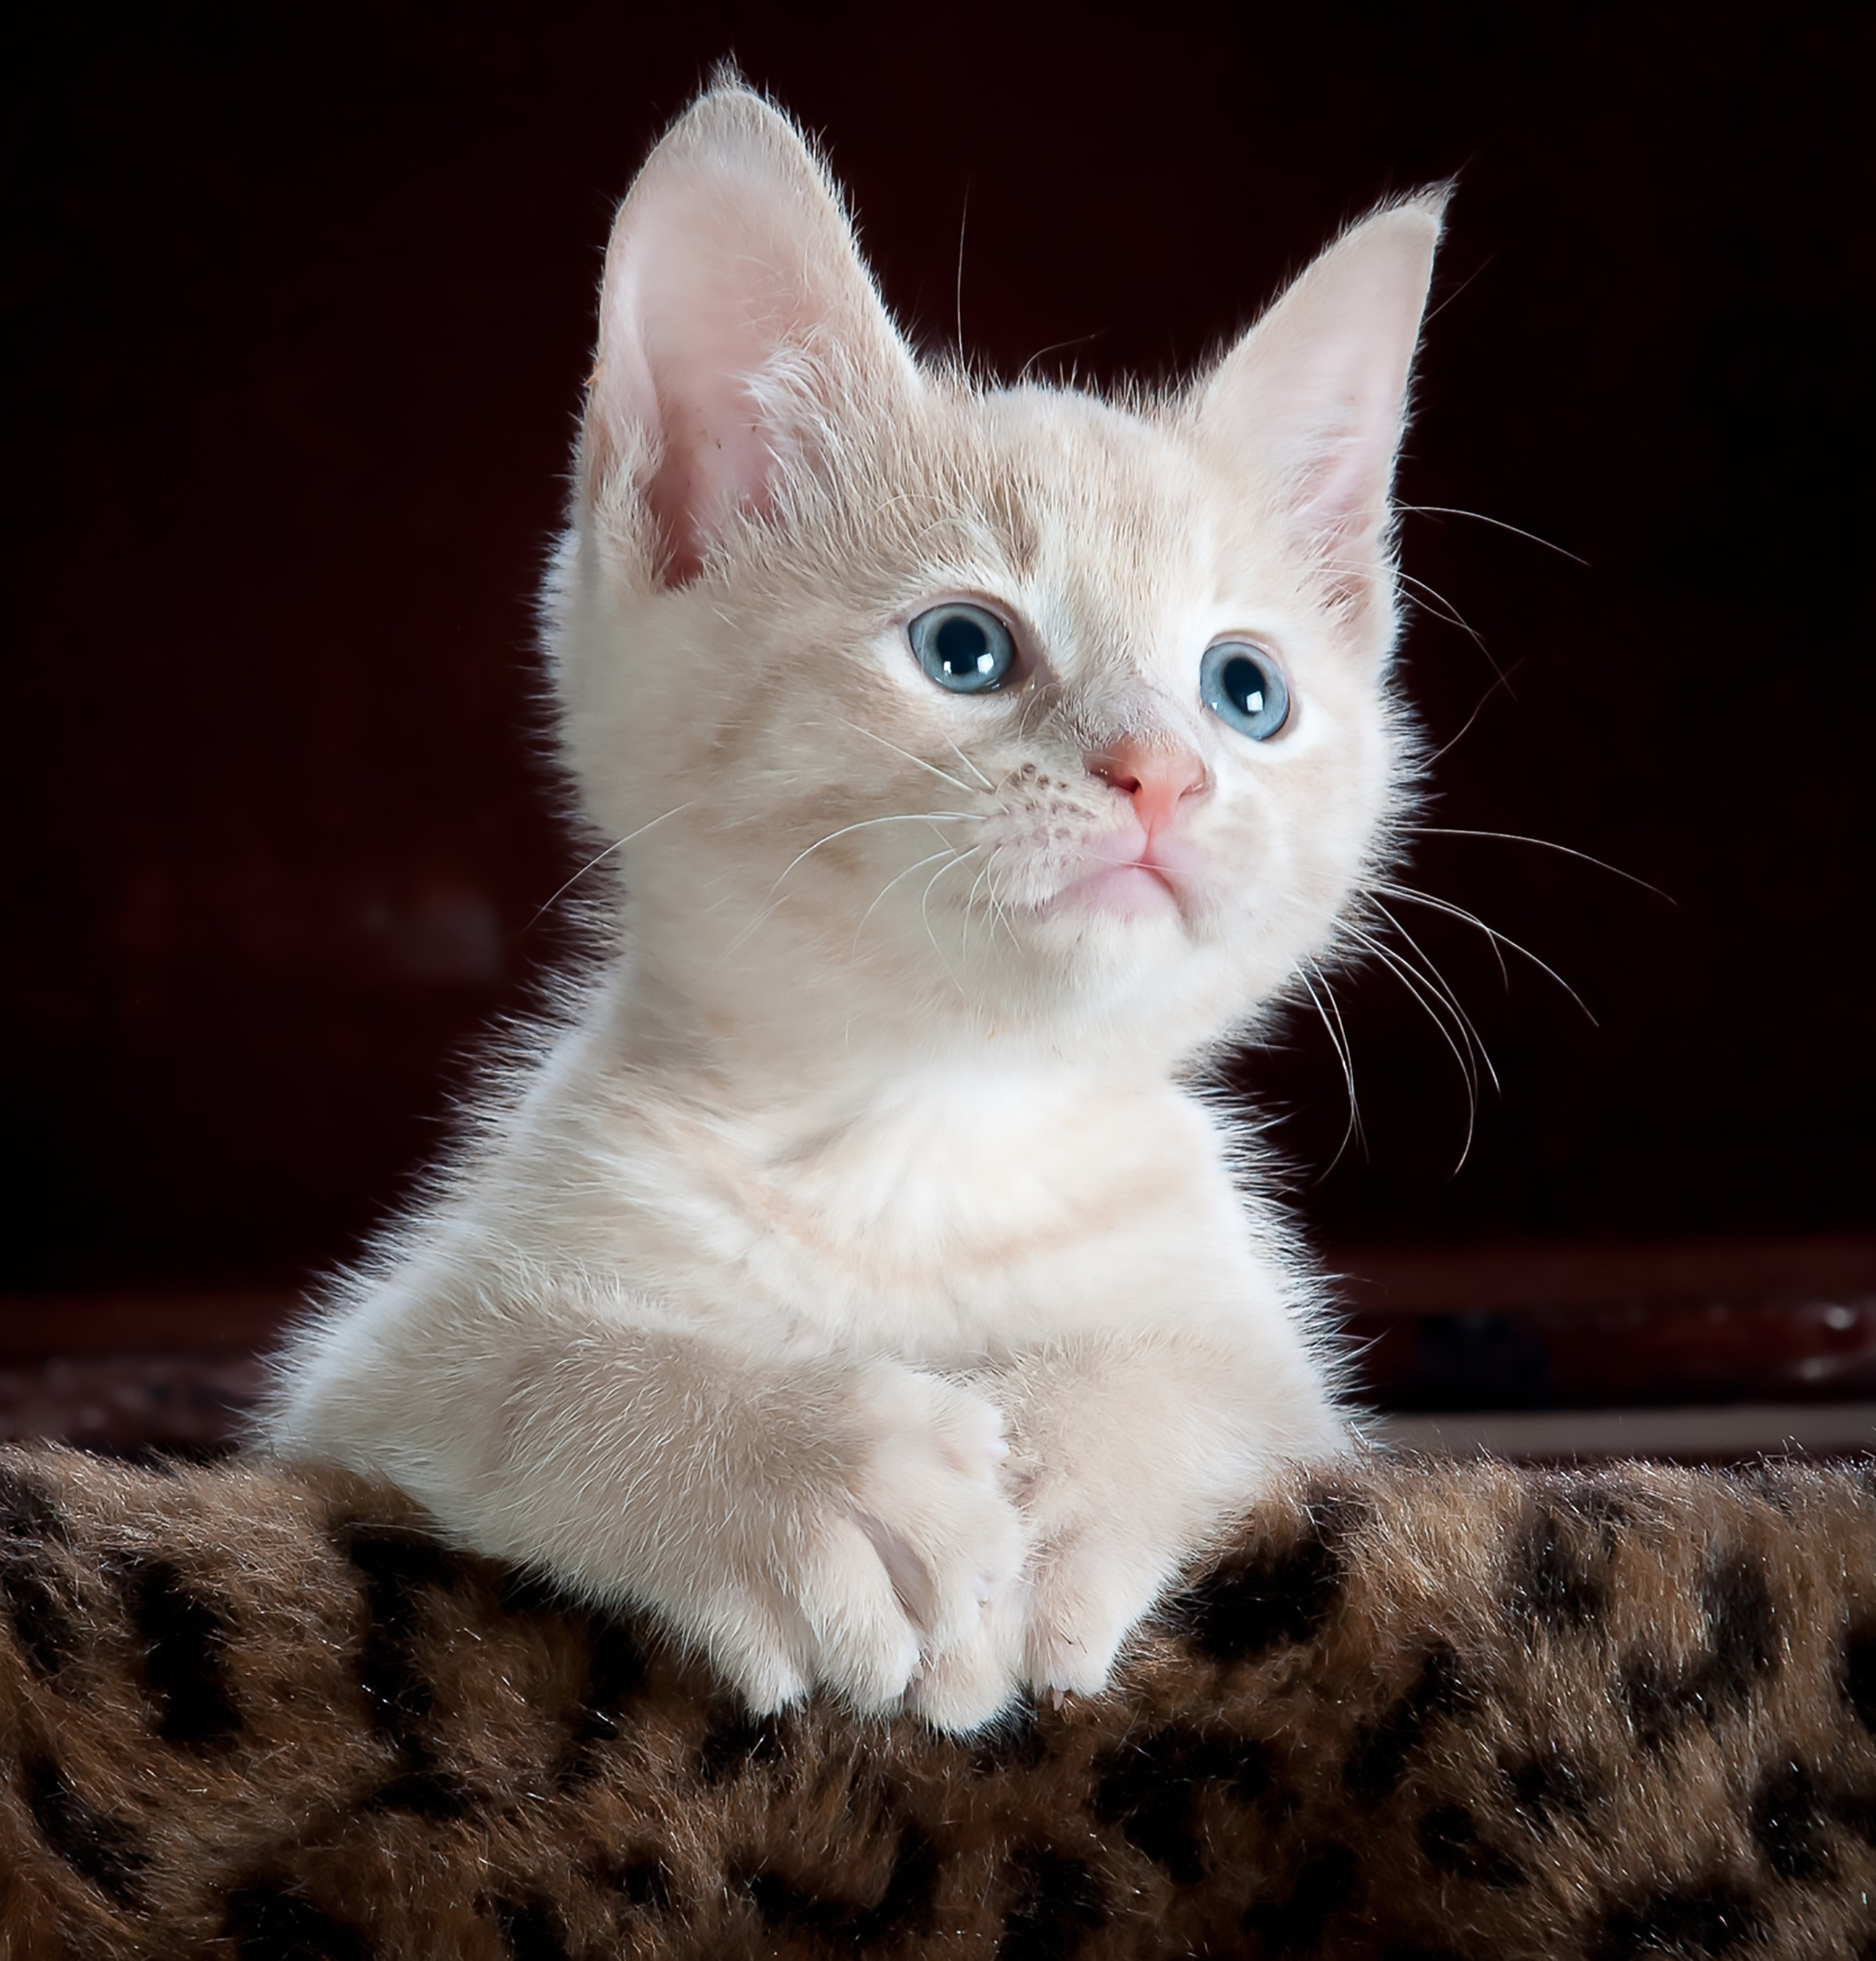 White And Grey Kitten On Brown And Black Leopard Print Textile Free Stock Photo